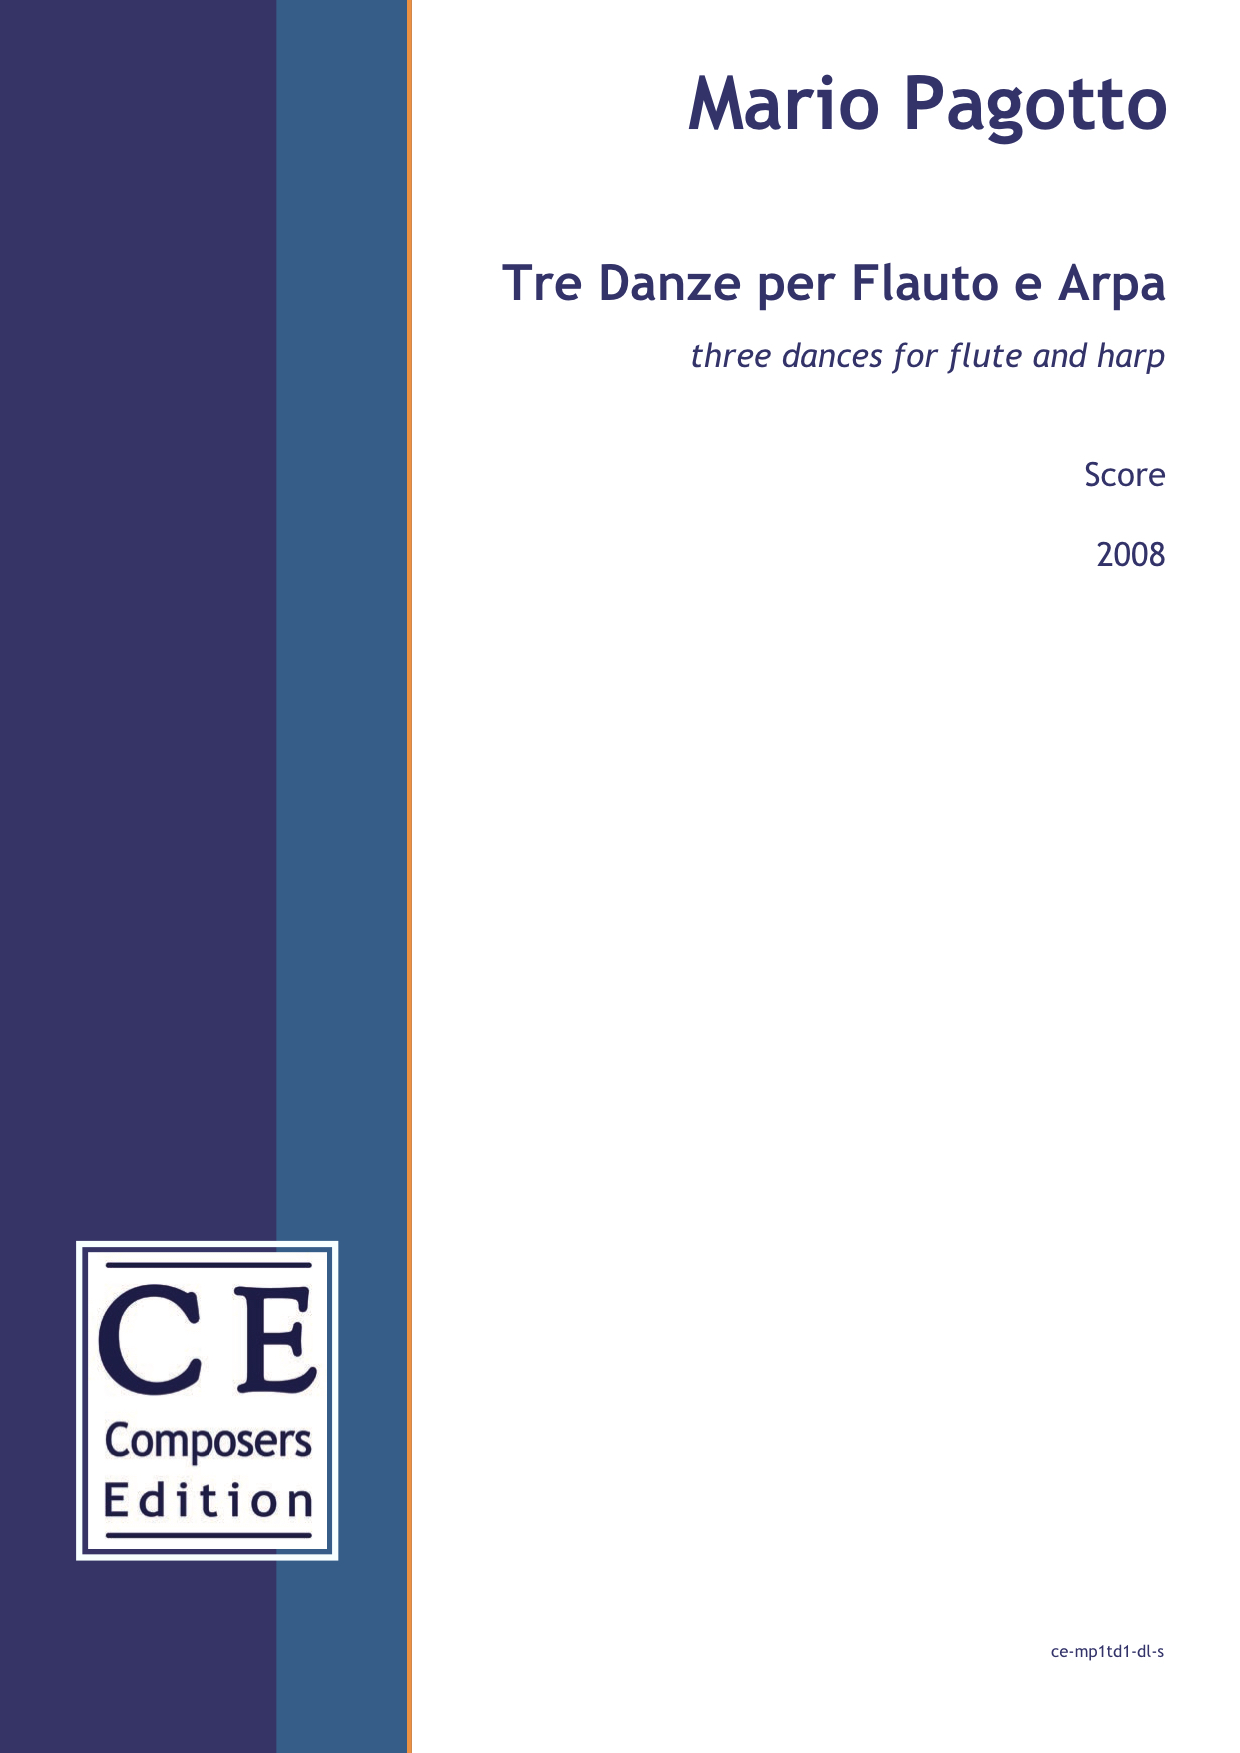 Mario Pagotto: Tre Danze per Flauto e Arpa three dances for flute and harp